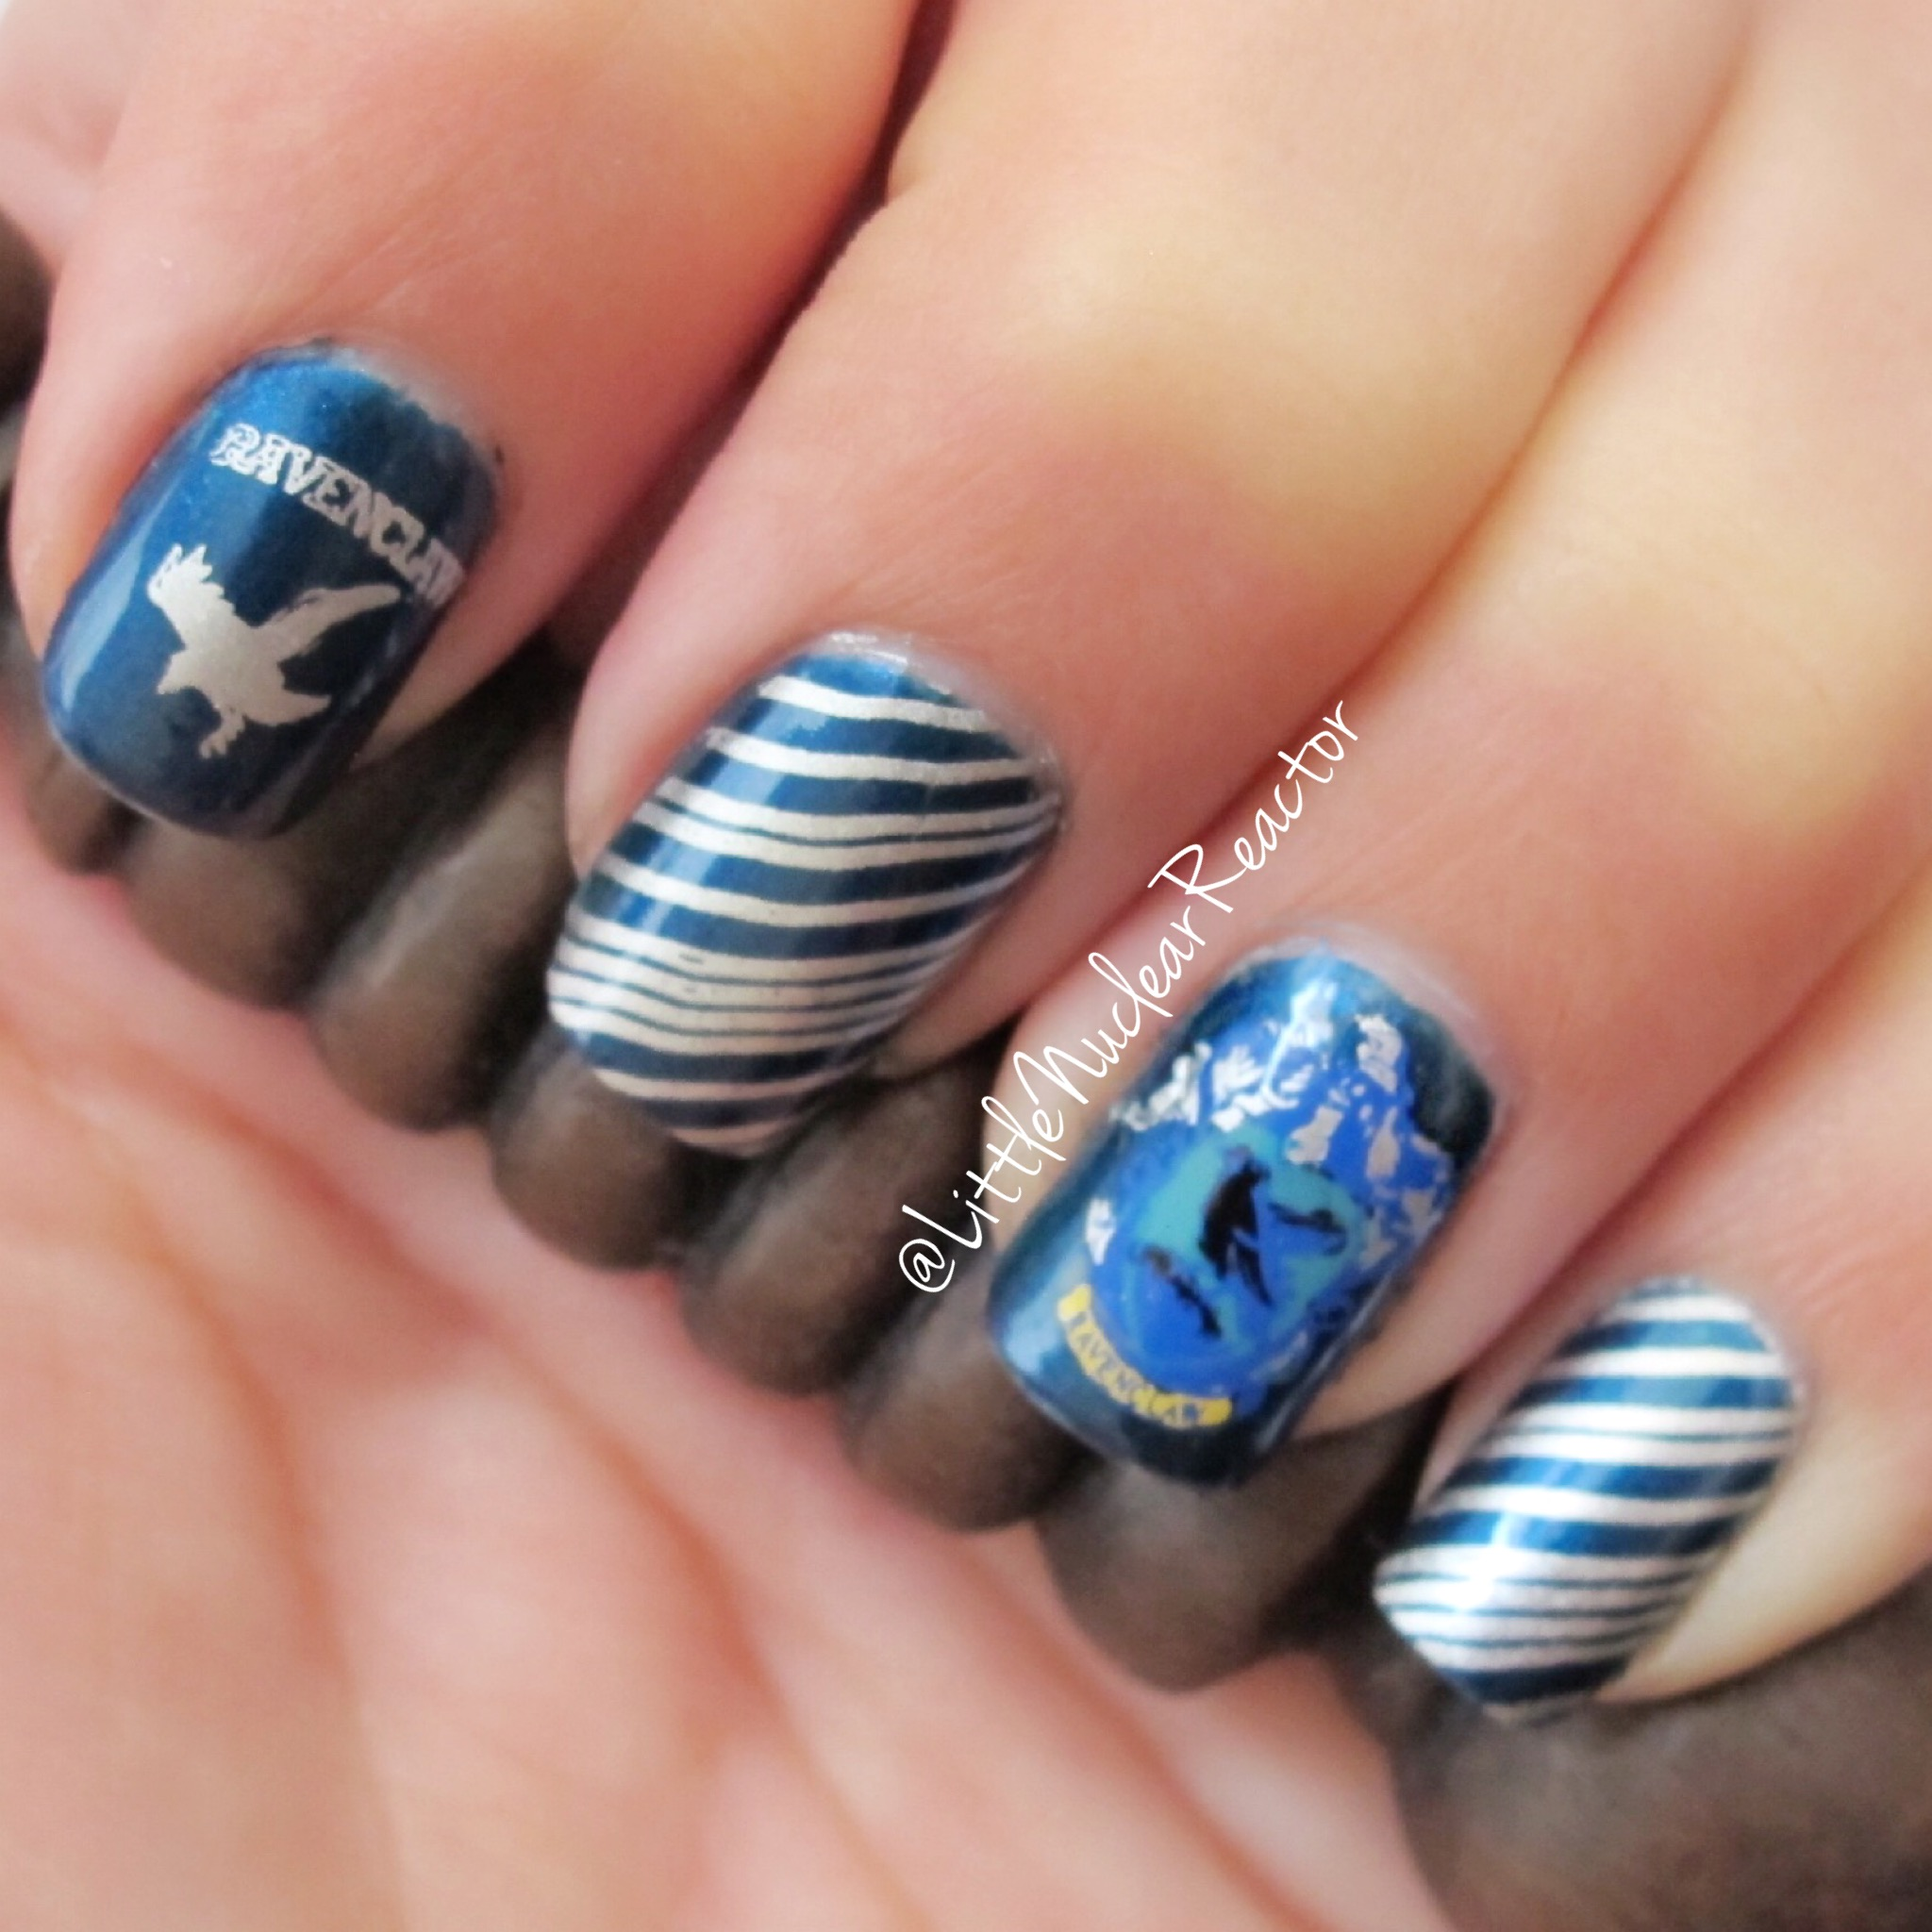 Dahlia Nails Ravenclaw Nail Art: Houses Of Hogwarts Ravenclaw Edition